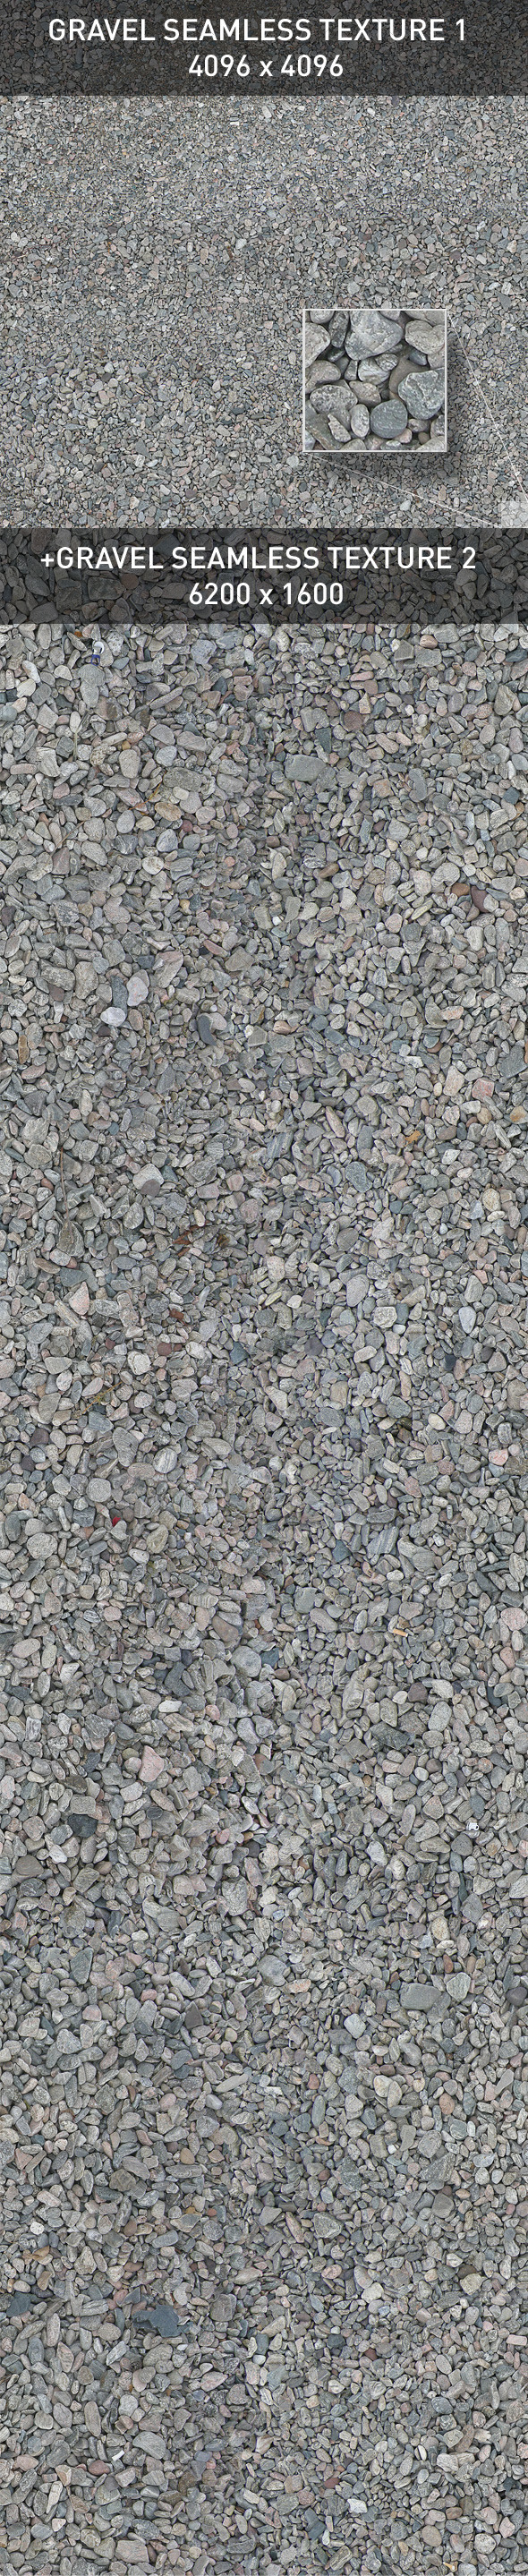 Ground. Gravel 2. - 3DOcean Item for Sale